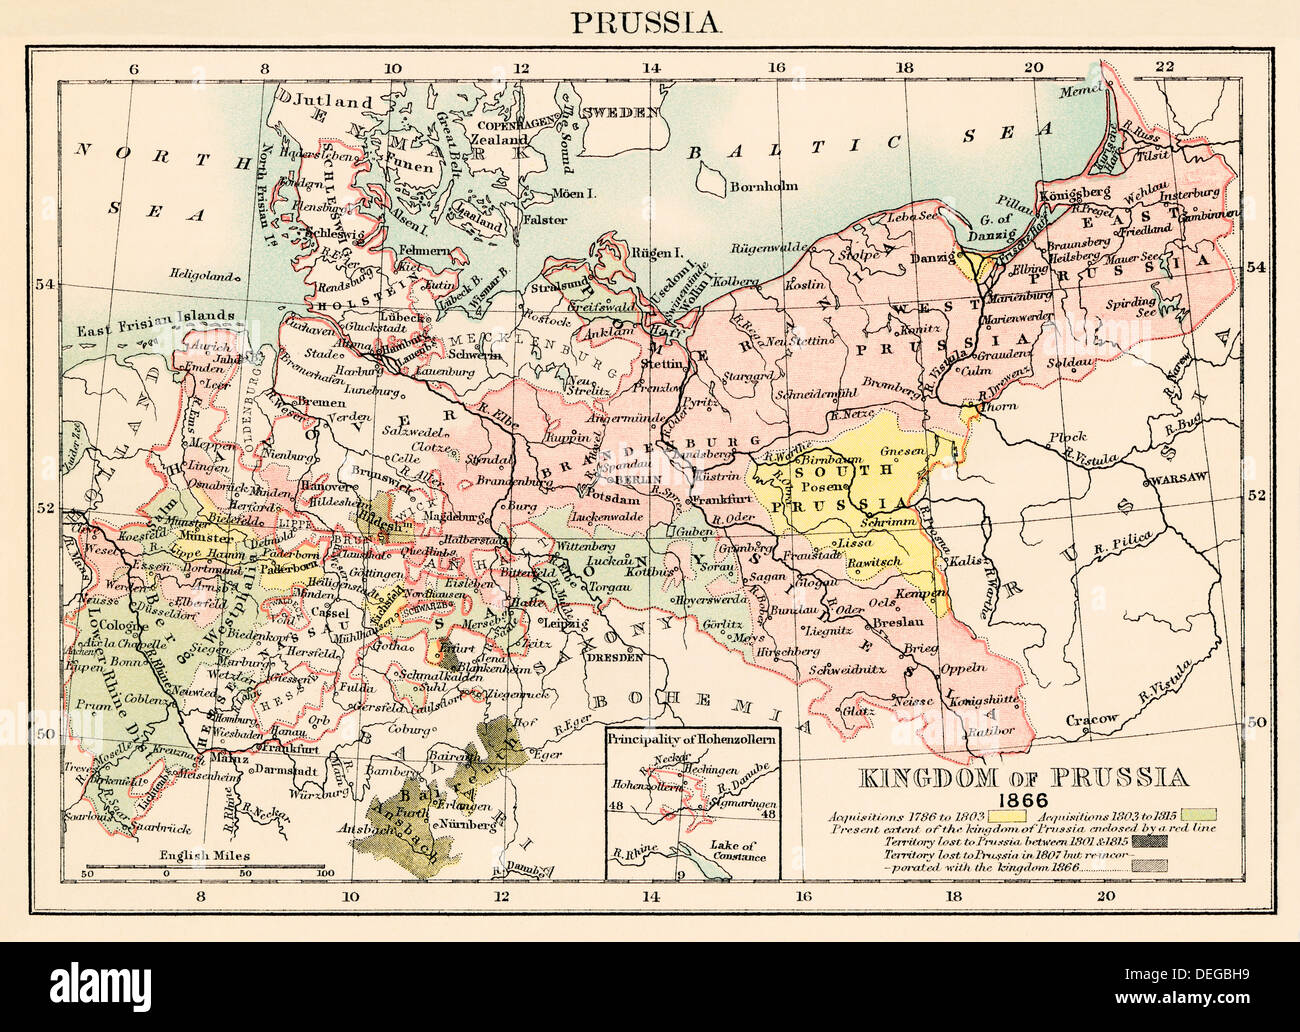 Kingdom Prussia Map on germany map, german confederation map, lithuania map, austria map, balkans map, scotland map, venezuela map, wales map, france map, sardinia map, worms map, spain map, german empire map, berlin map, german states map, ottoman empire map, denmark map, ukraine map, russia map, luxembourg map,